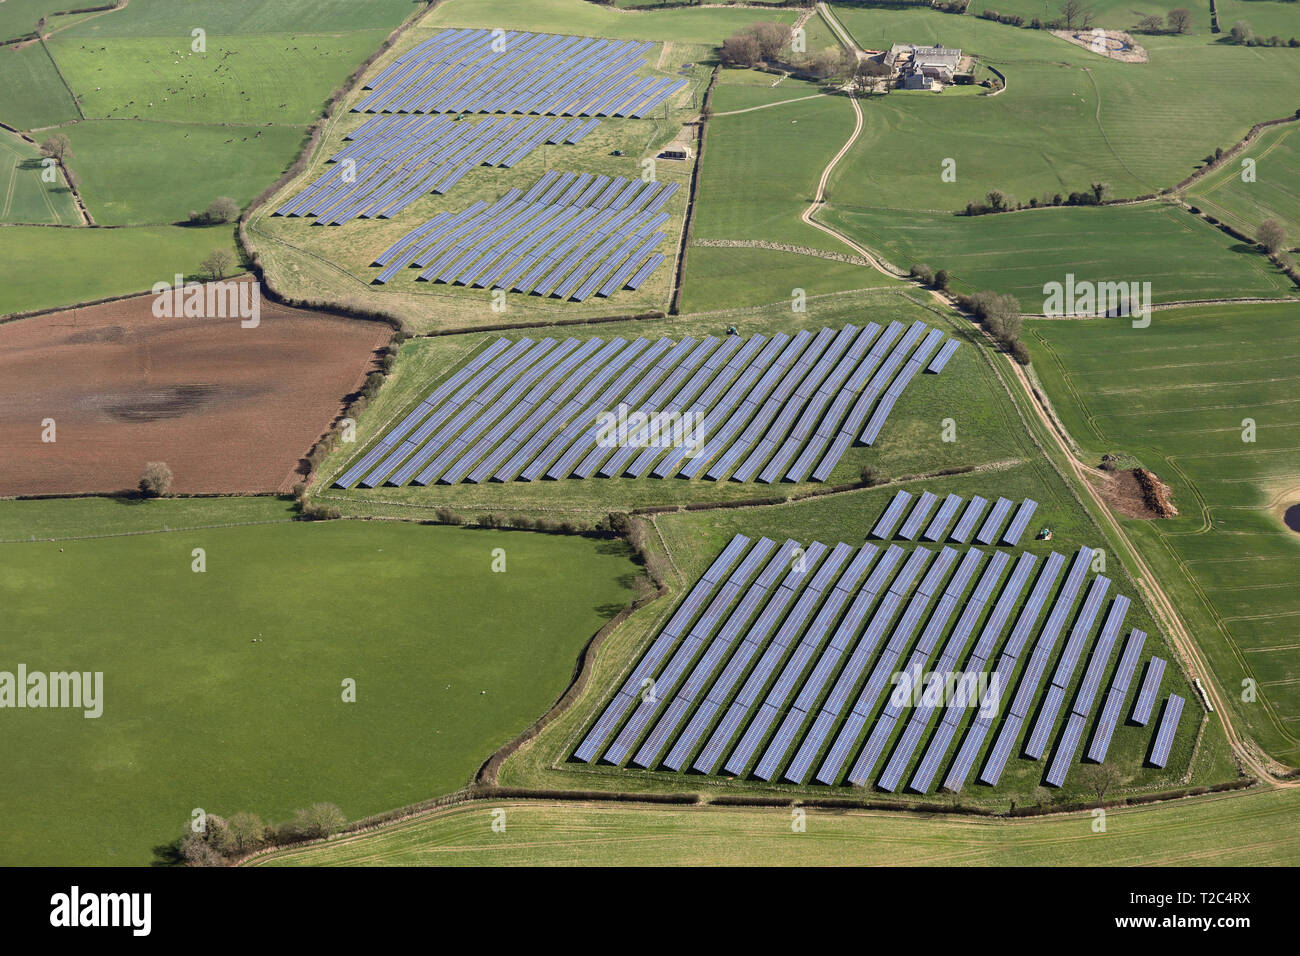 aerial view of a solar farm in Northern England, UK - Stock Image